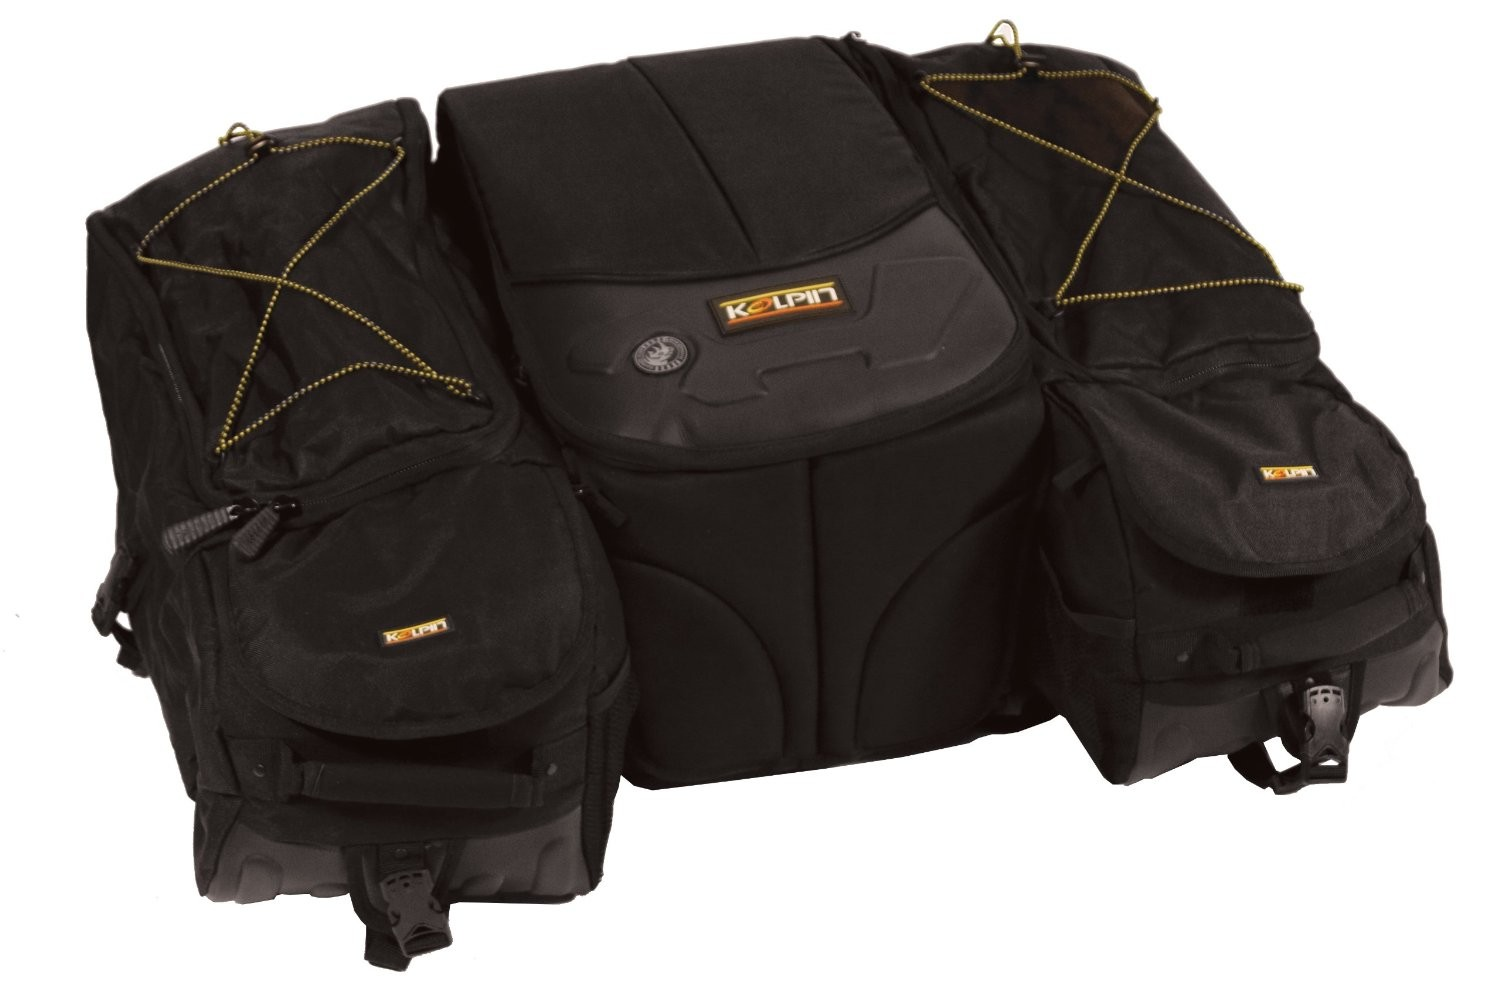 Кофр квадроцикла задний Kolpin Matrix Black Deluxe Contoured Cargo Bag 91122